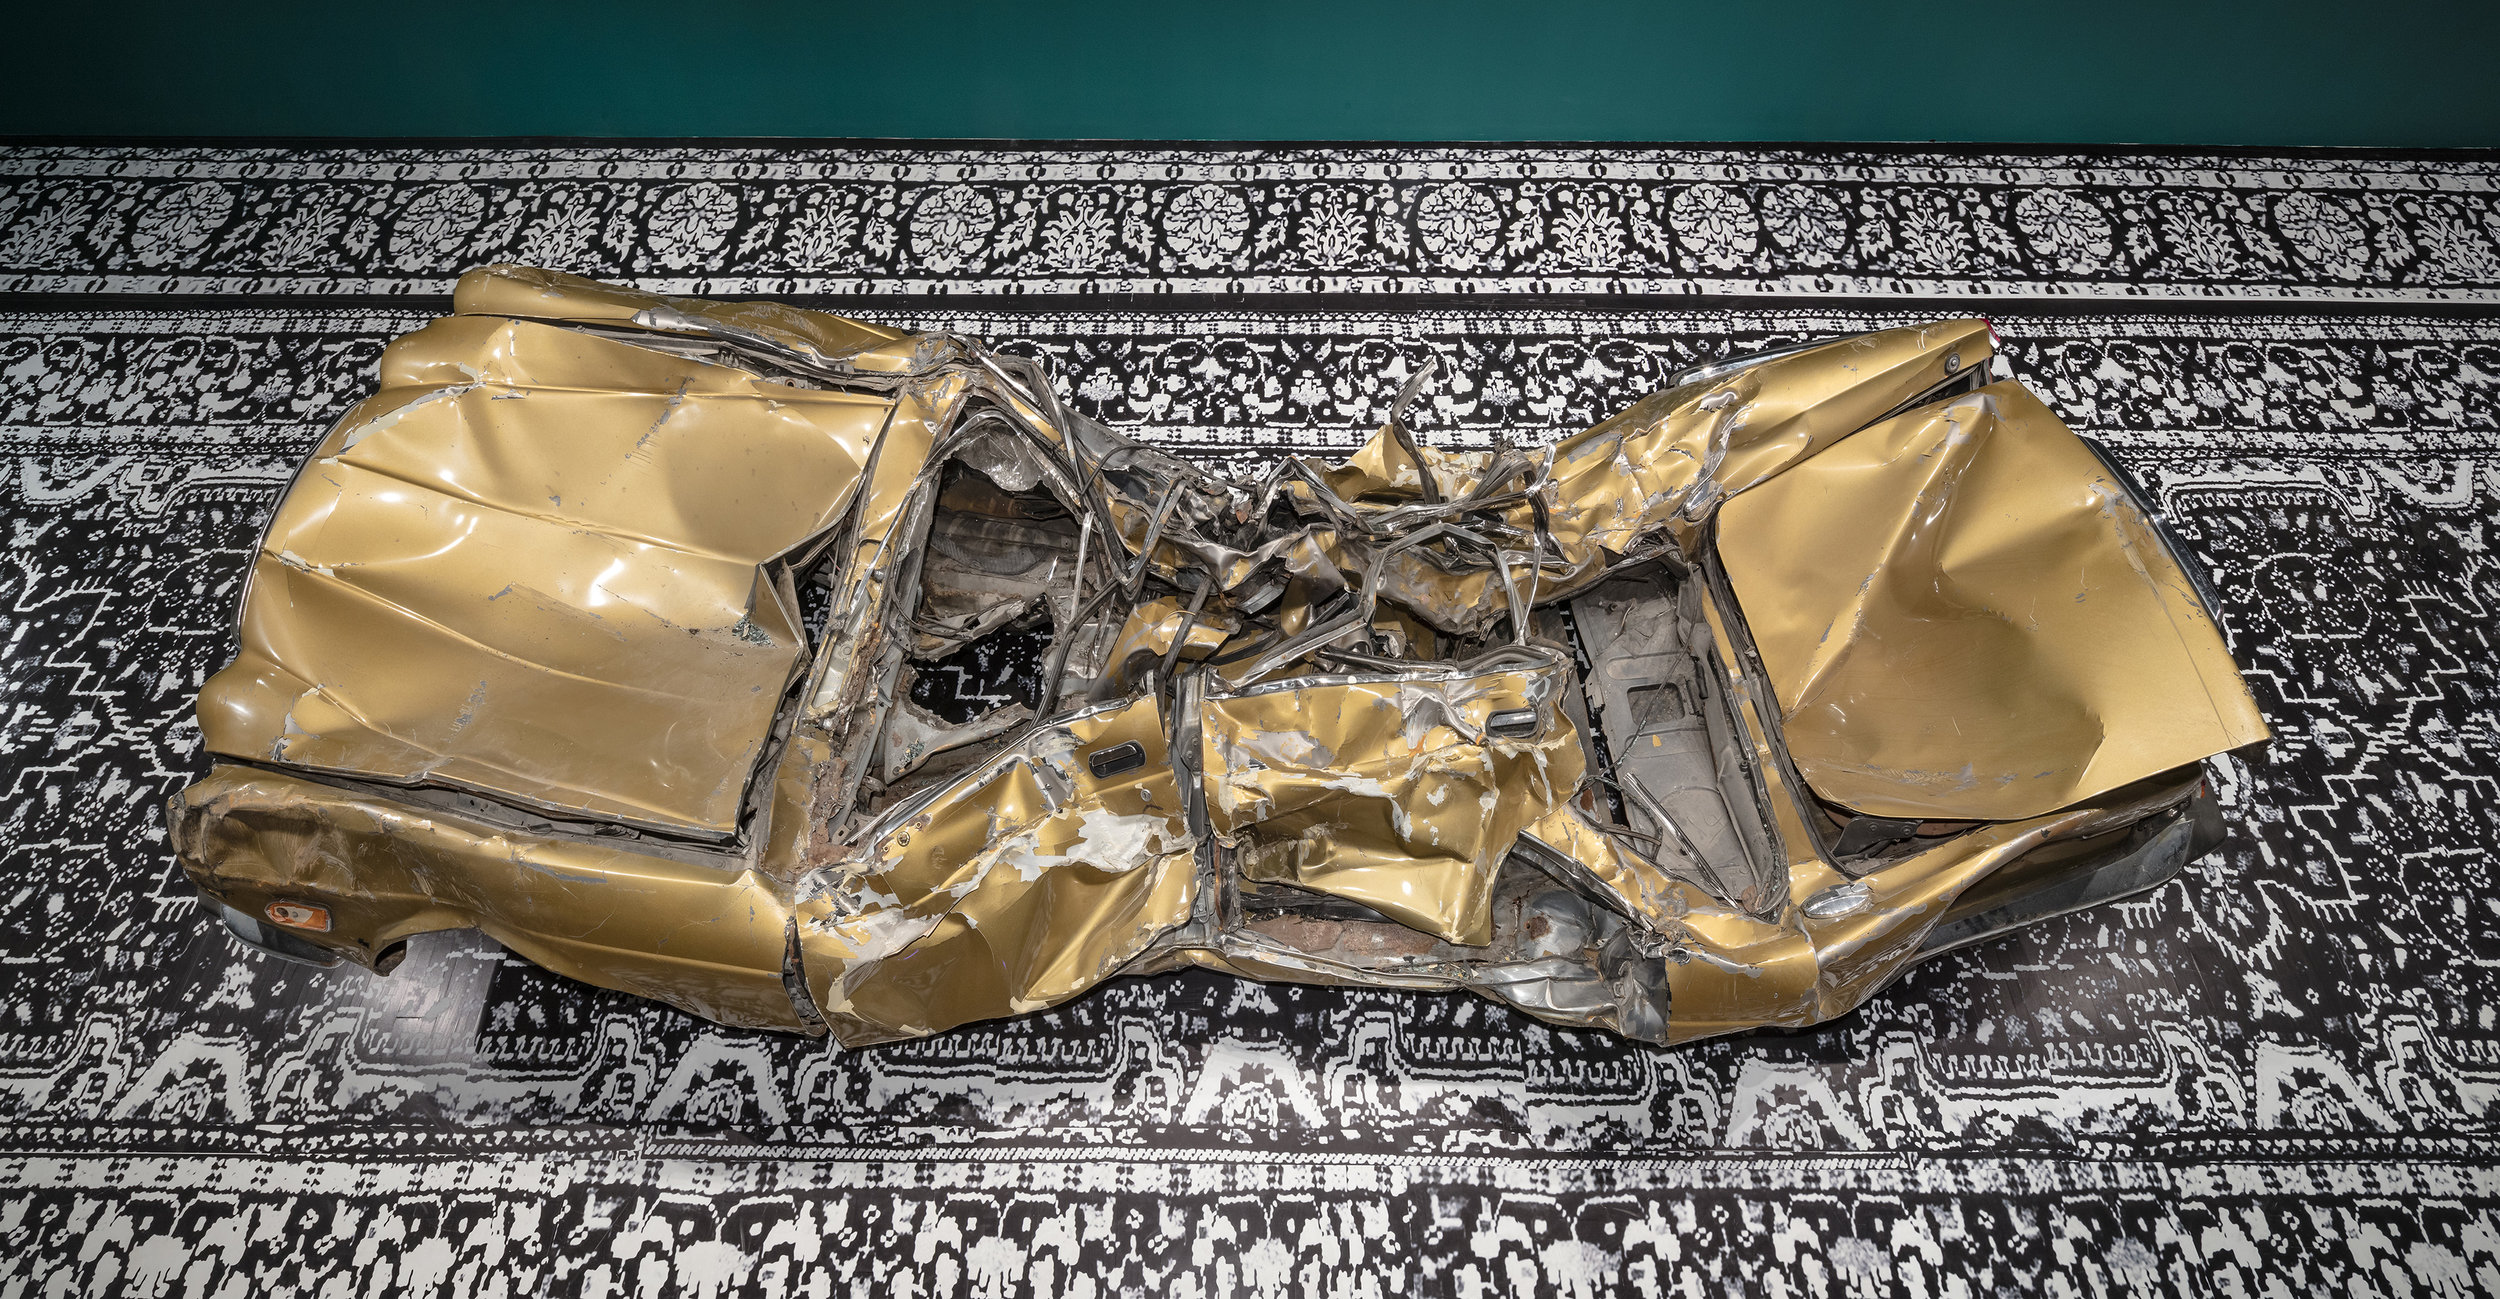 I am the American Dream (still just a Paki)/Seminar Series on Race, Destruction and the many afterlives of a Paki: A private talk for one by your less than Ideal Representative , 2010/17, 1987 gold Jaguar Vanden Plas, installation view at the Art Museum at the University of Toronto as part of the 2017 Sobey Art Award exhibition